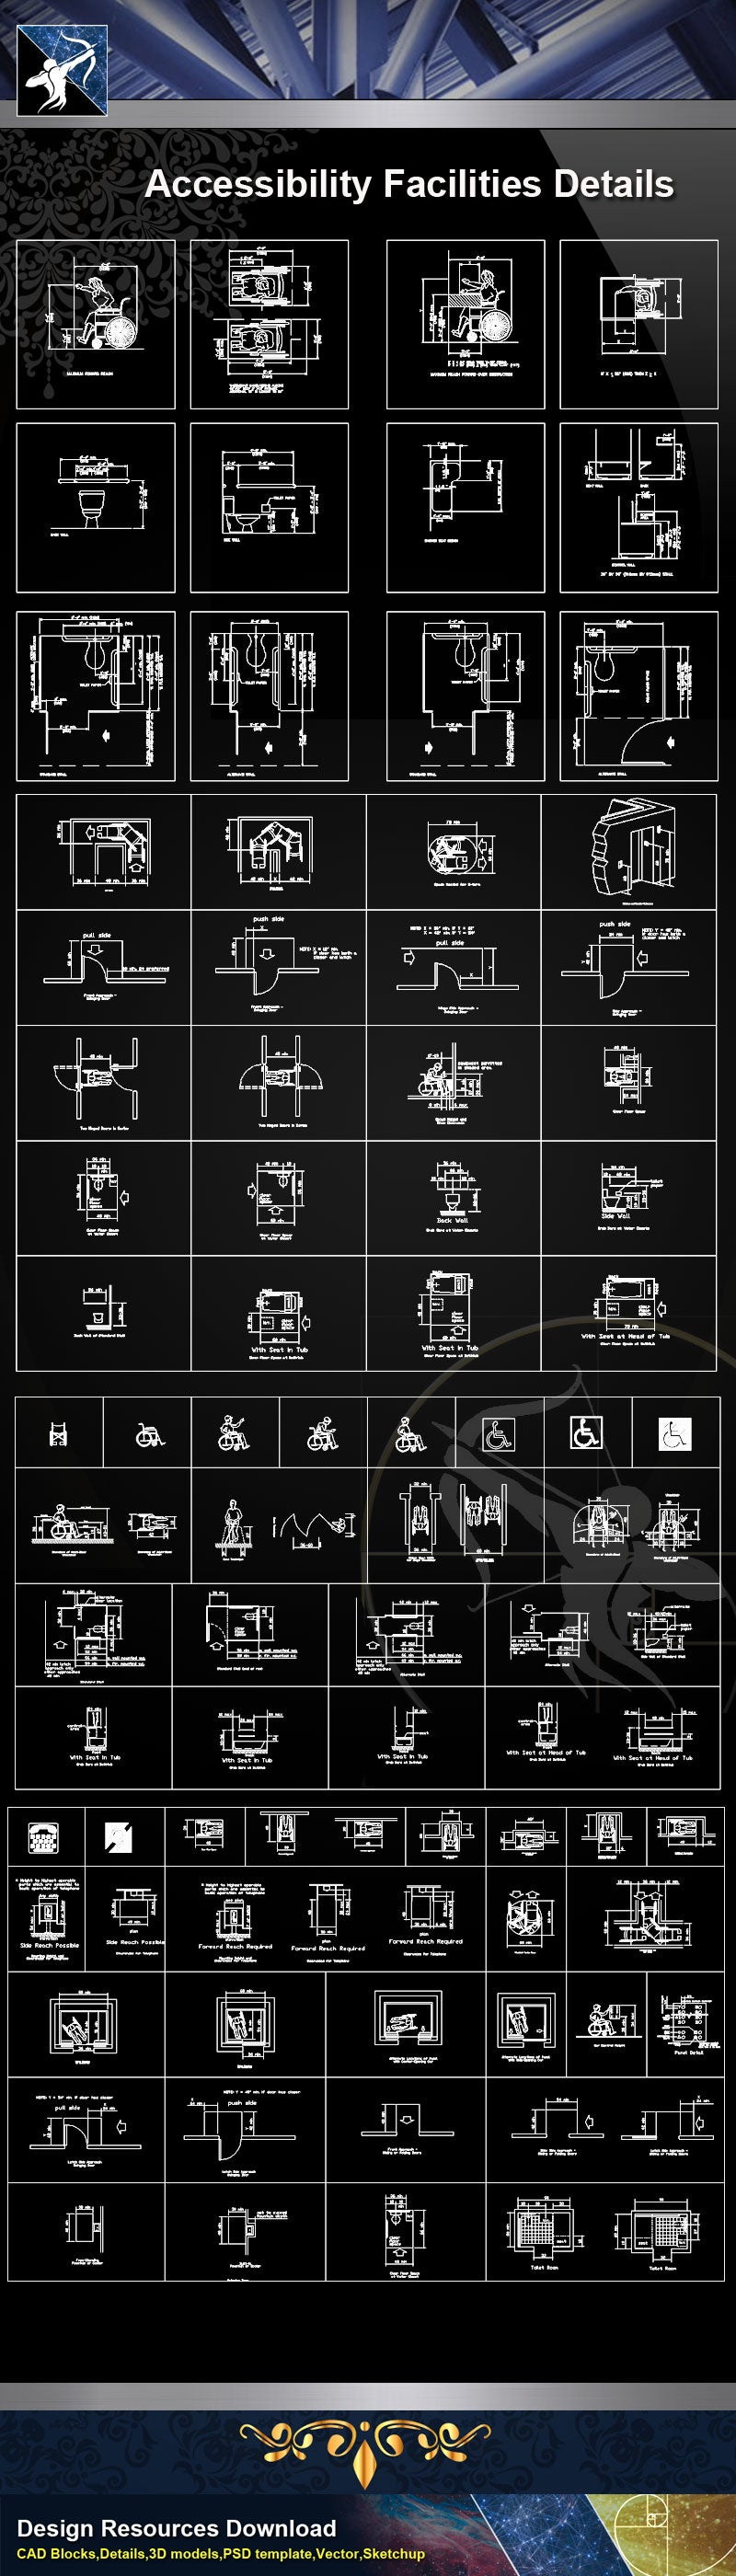 【Accessibility Facilities Details】Accessibility Facilities Details 1